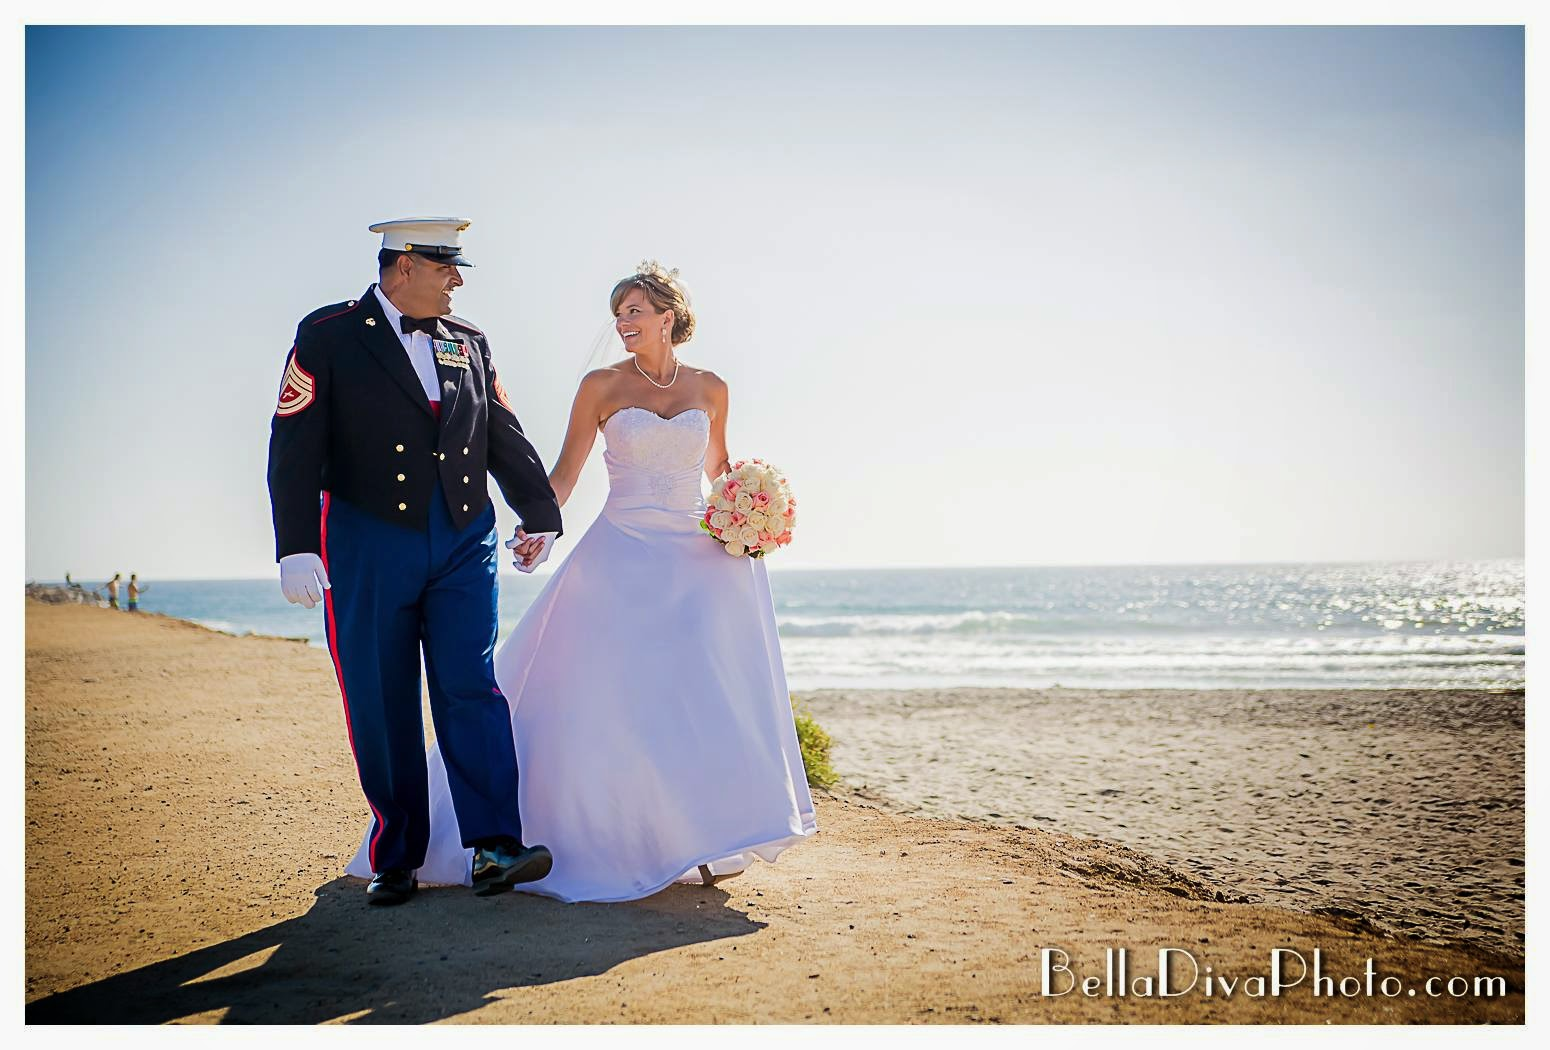 And Pretty Sweet That I Got To Be The First Photograph An Even At Brand New Casa Del Mar Beach Resort On Camp Pendleton